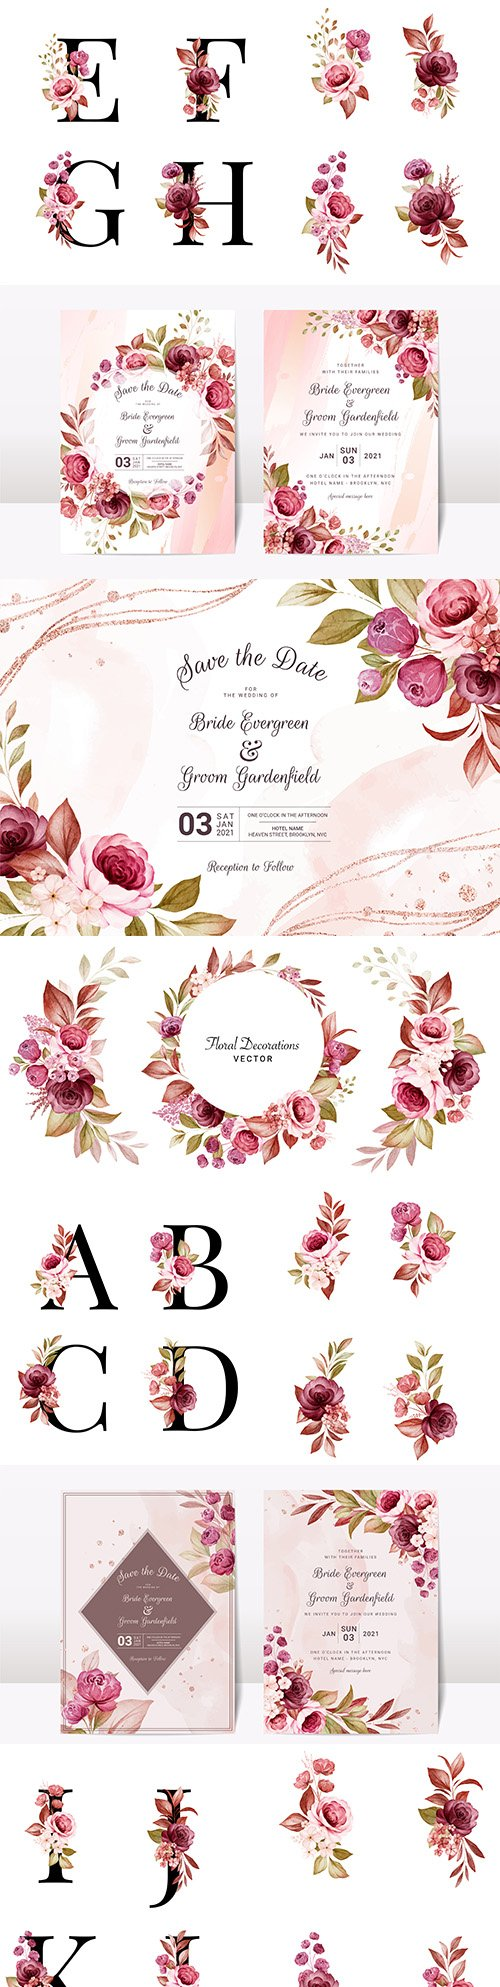 Floral wedding invitation template with letters and elegant roses